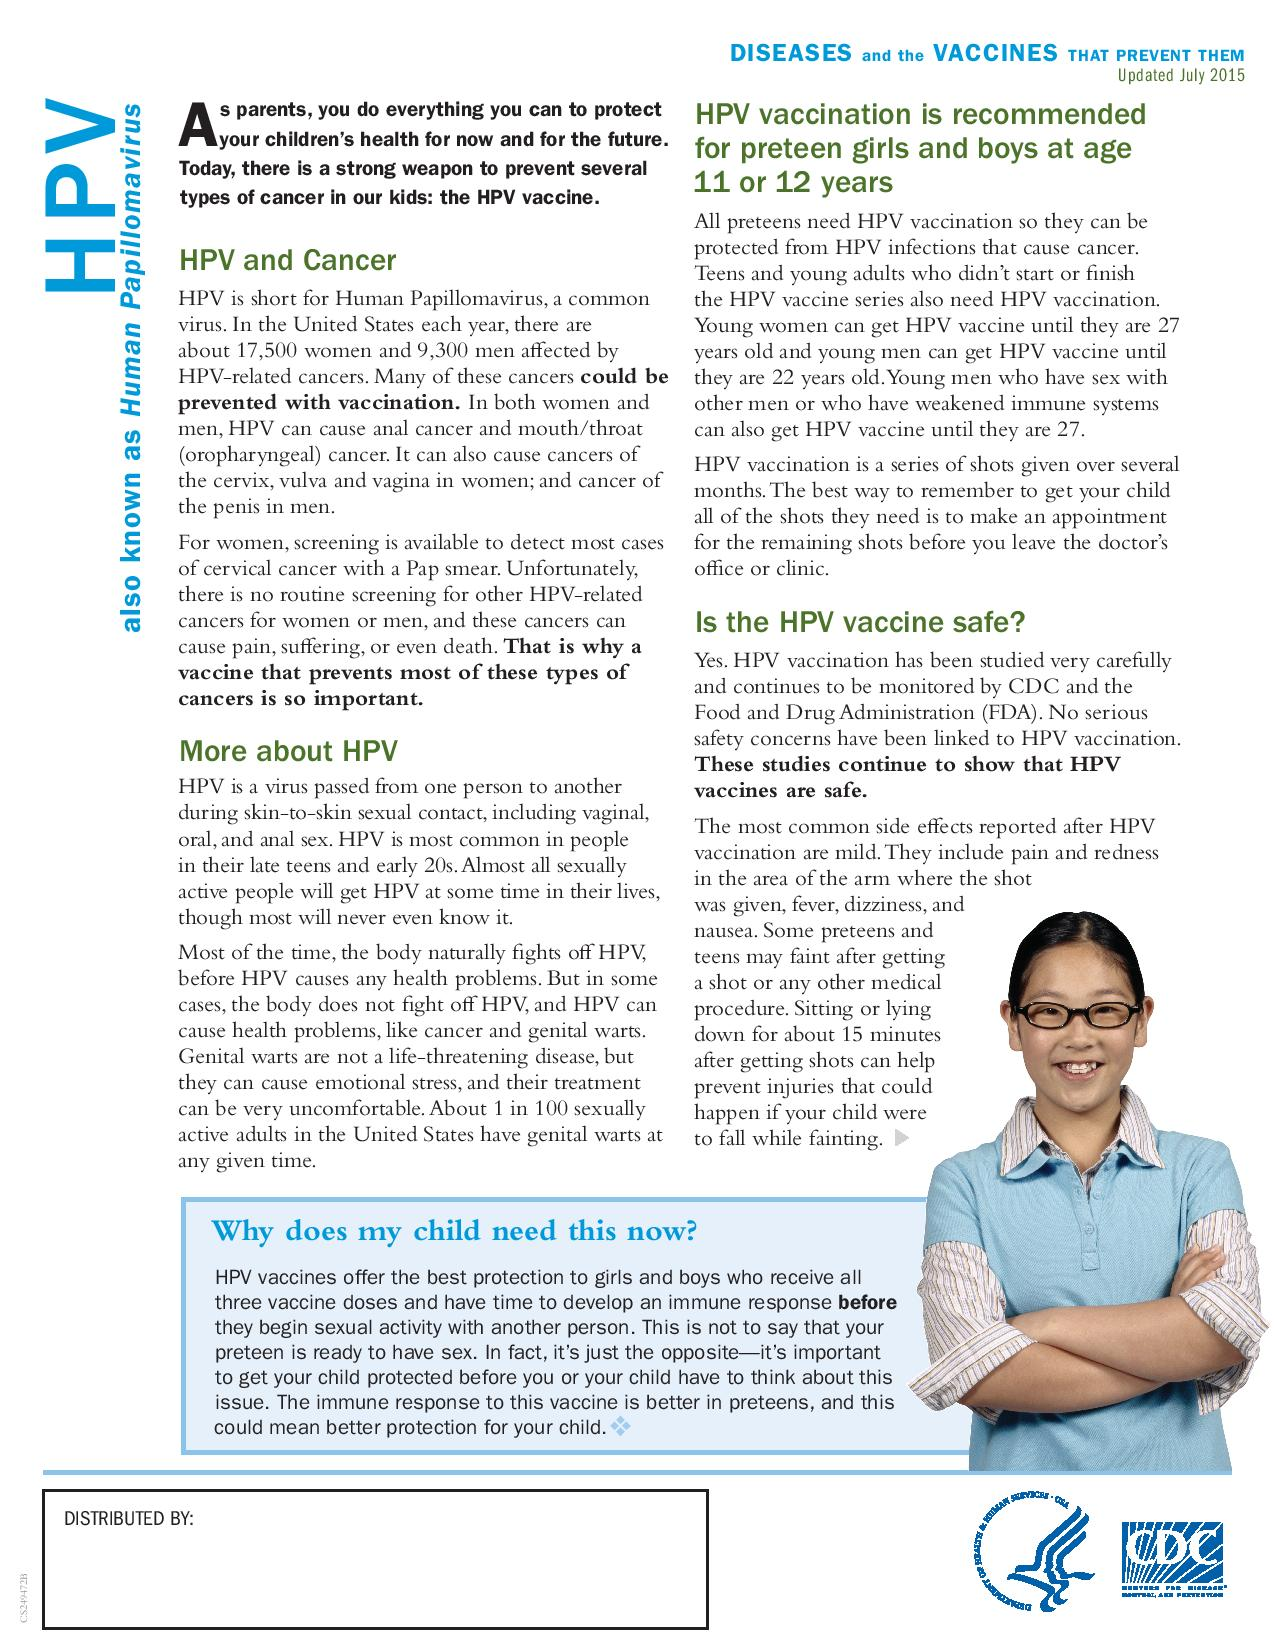 HPV vaccine fact sheet for parents